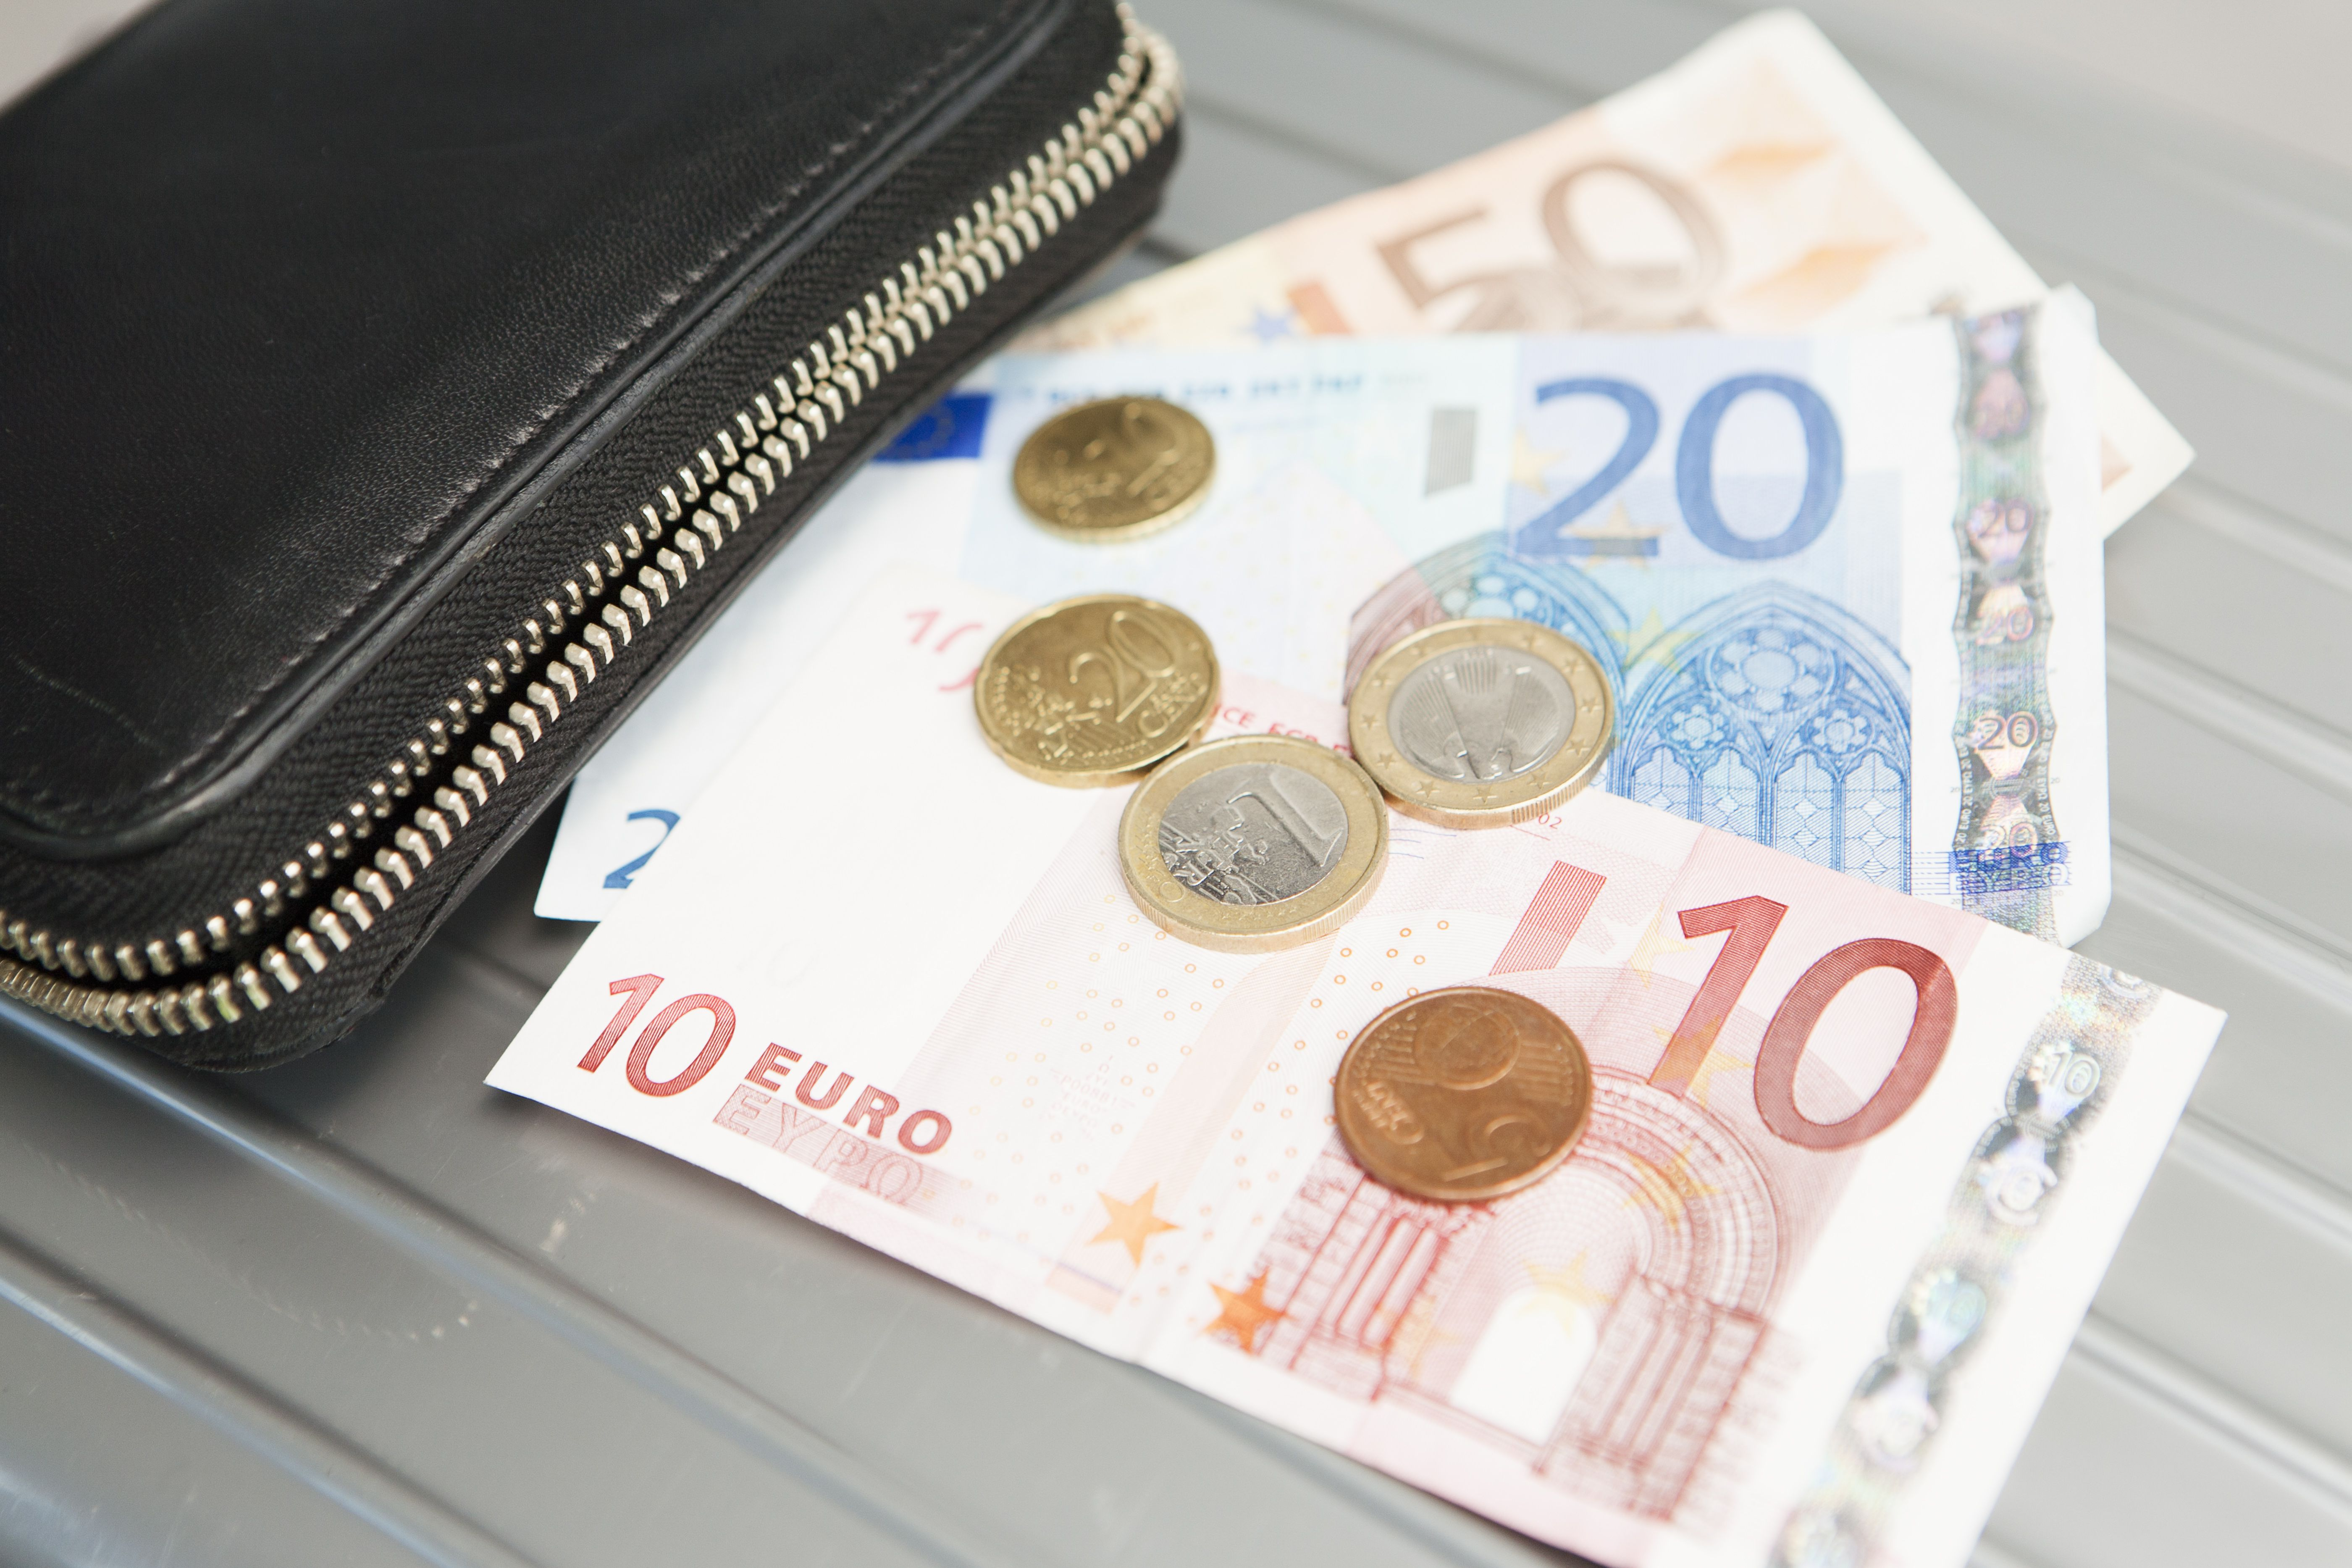 Euros In London And The United Kingdom